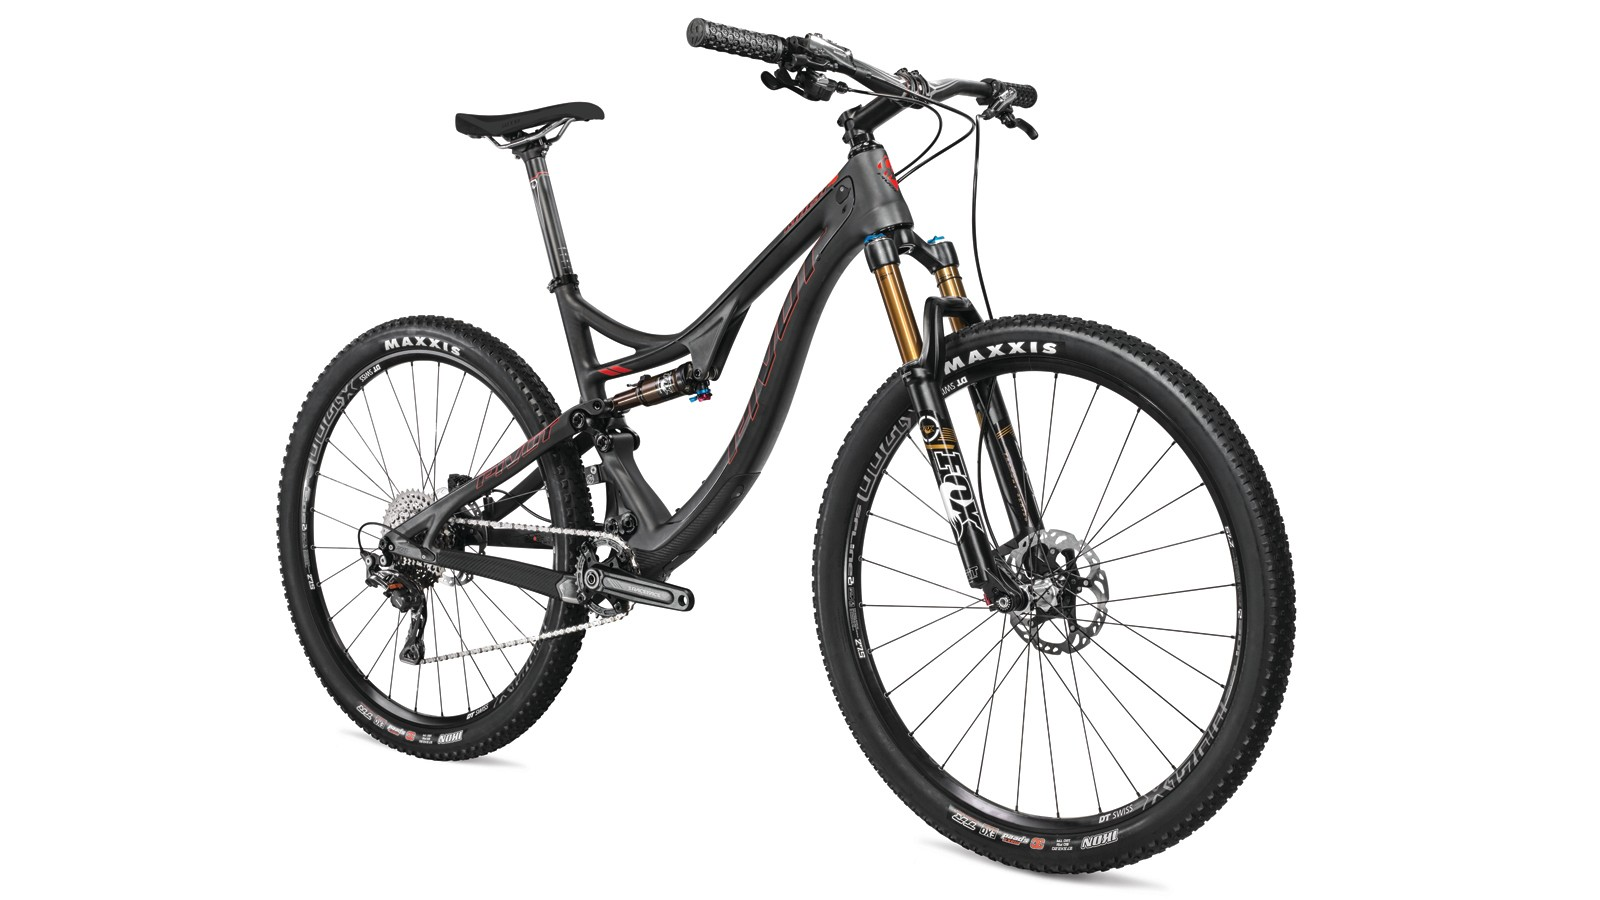 Now in its fourth iteration, the new Pivot Mach 4 gets 27.5in wheels and a new carbon frame design